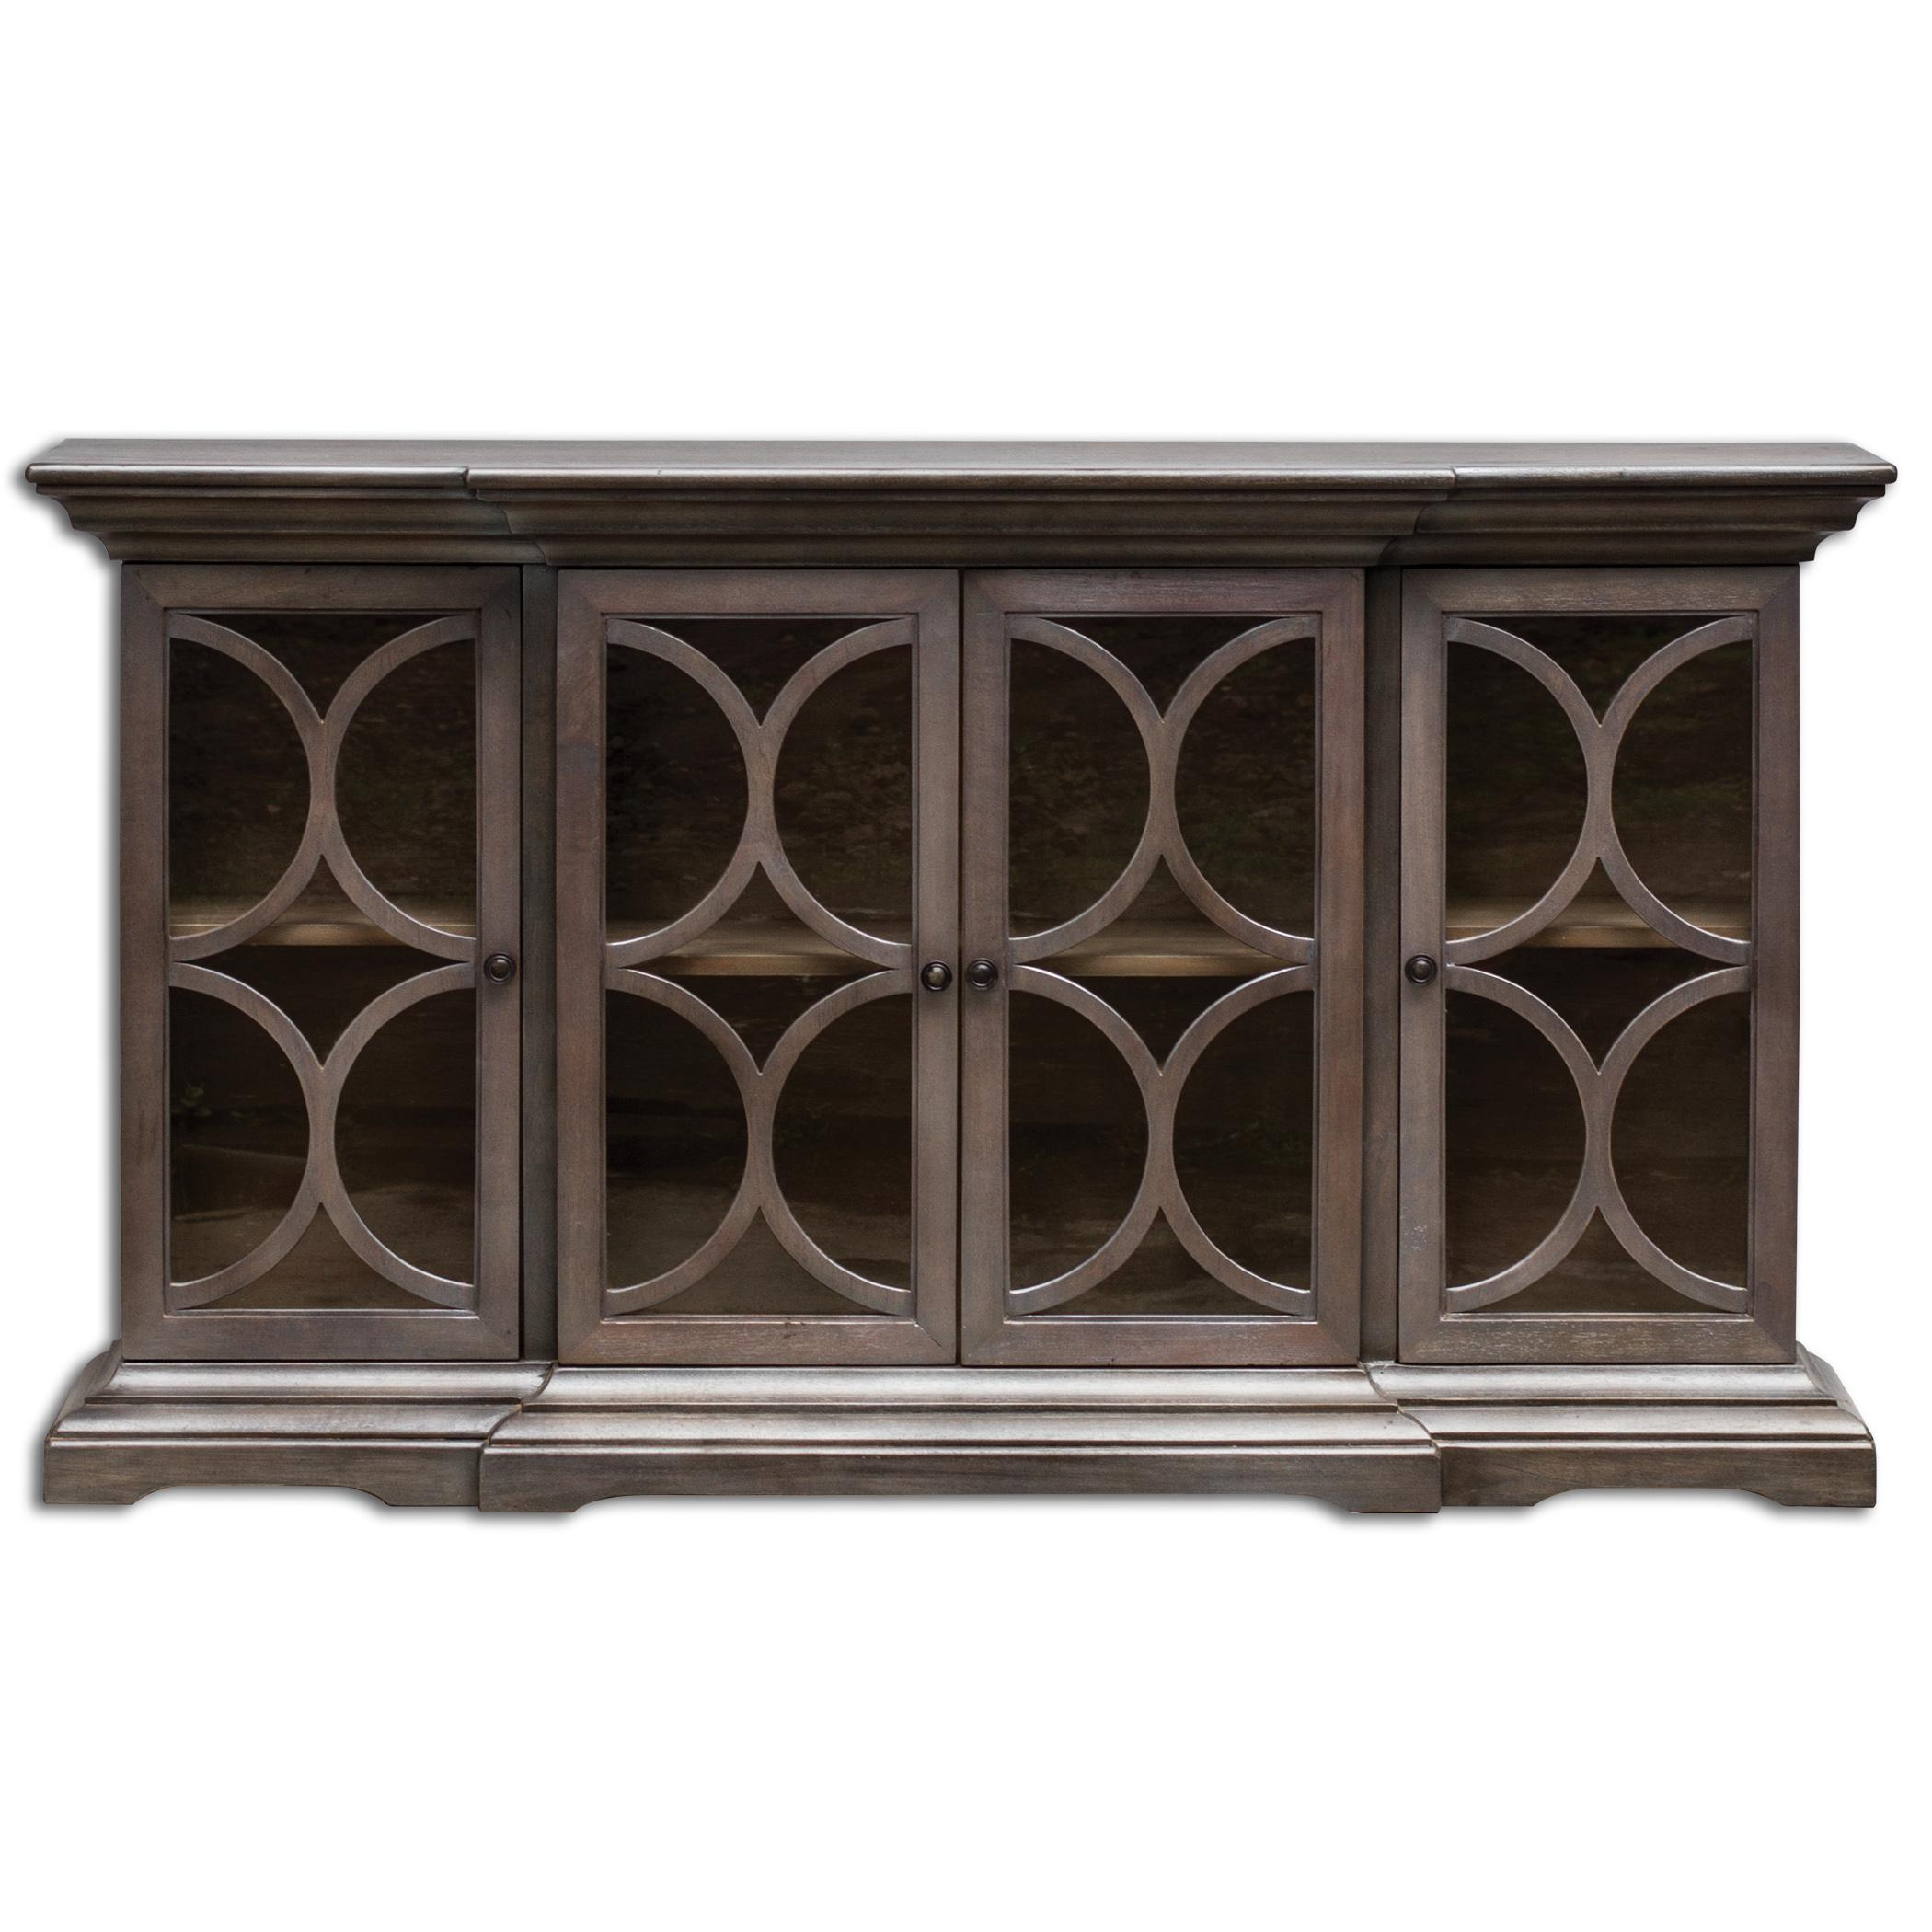 Accent Furniture - Chests Belino Wooden 4 Door Chest by Uttermost at Mueller Furniture